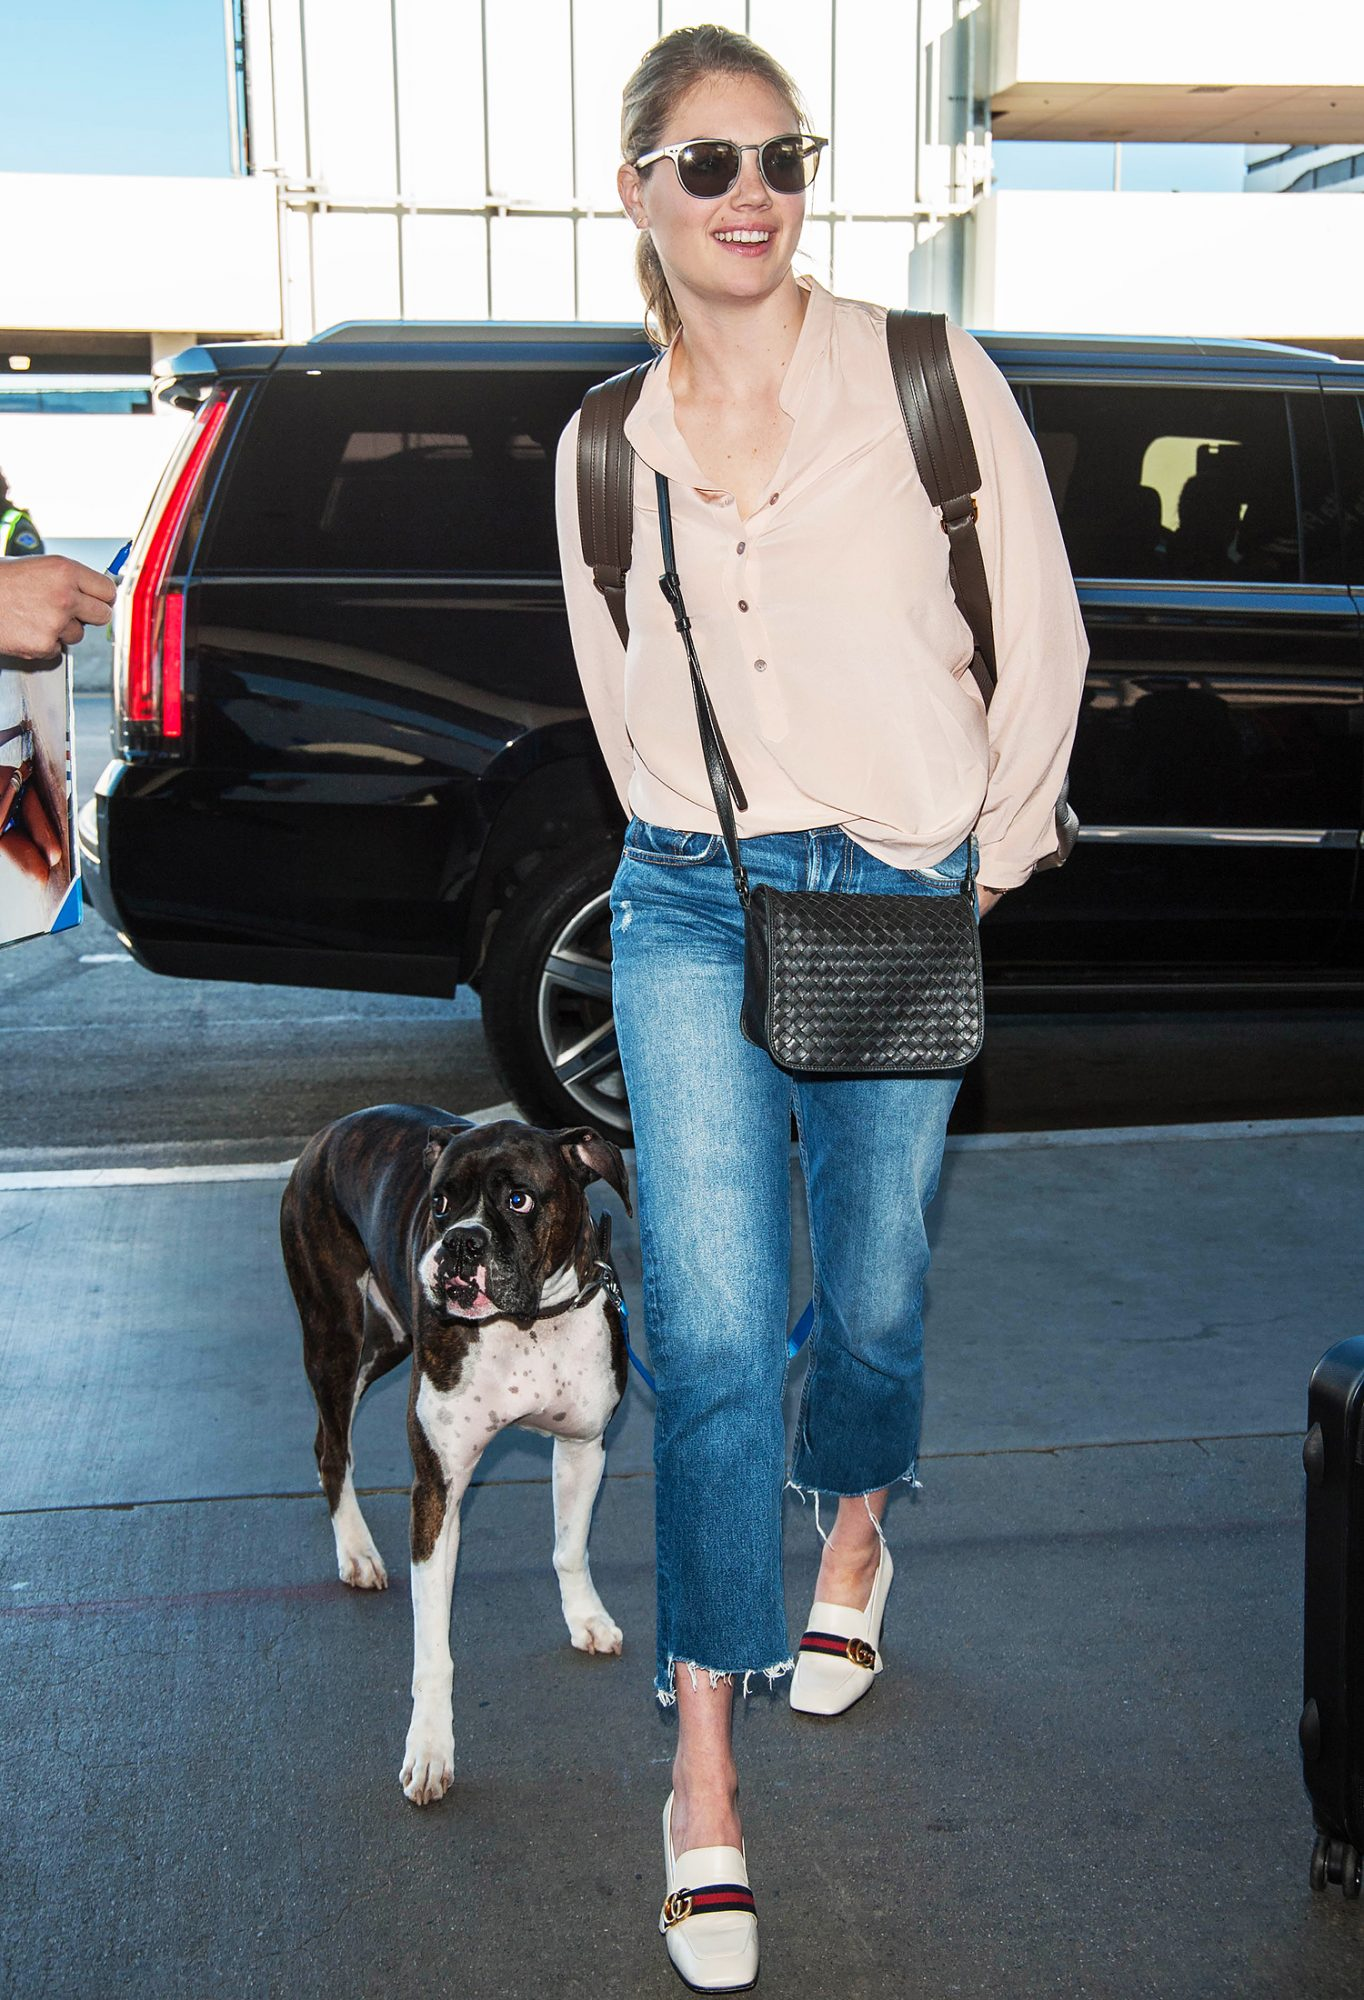 EXCLUSIVE: Kate Upton and Justin Verlander seen traveling with her dog at LAX airport